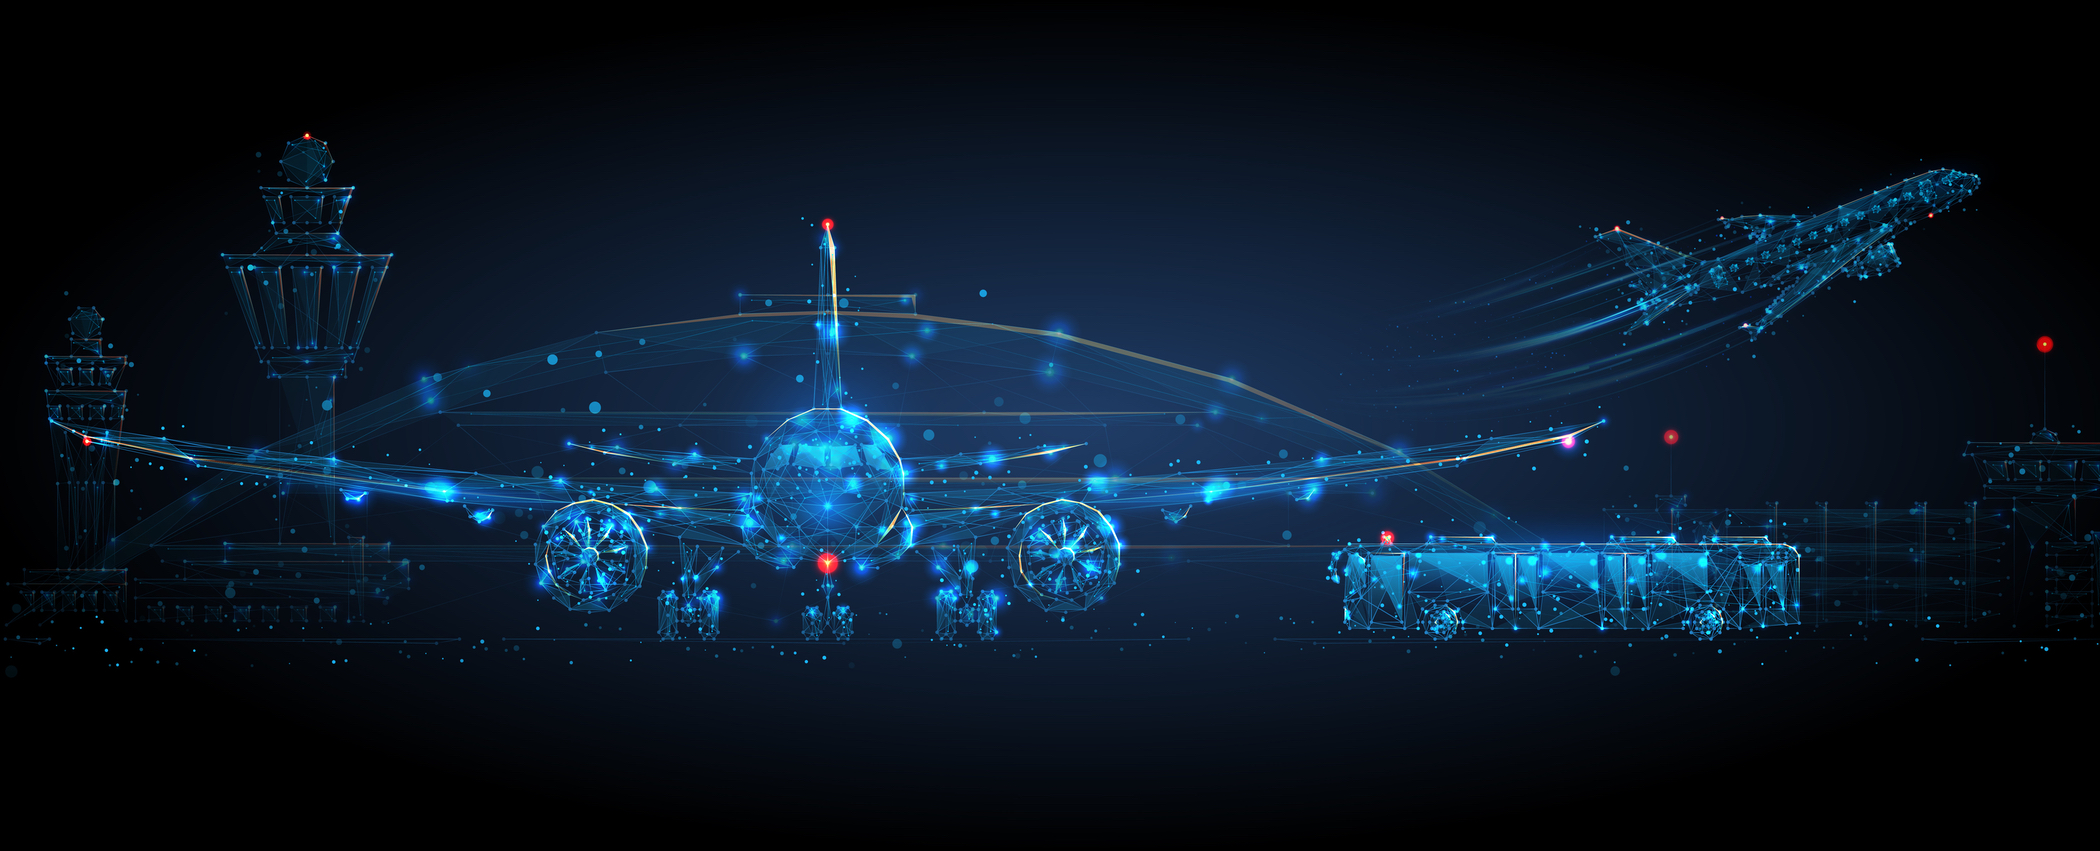 Digital airplane standing on runway, airport buildings, plane taking off, shuttle bus, control tower. Airport low poly wireframe concept in dark blue